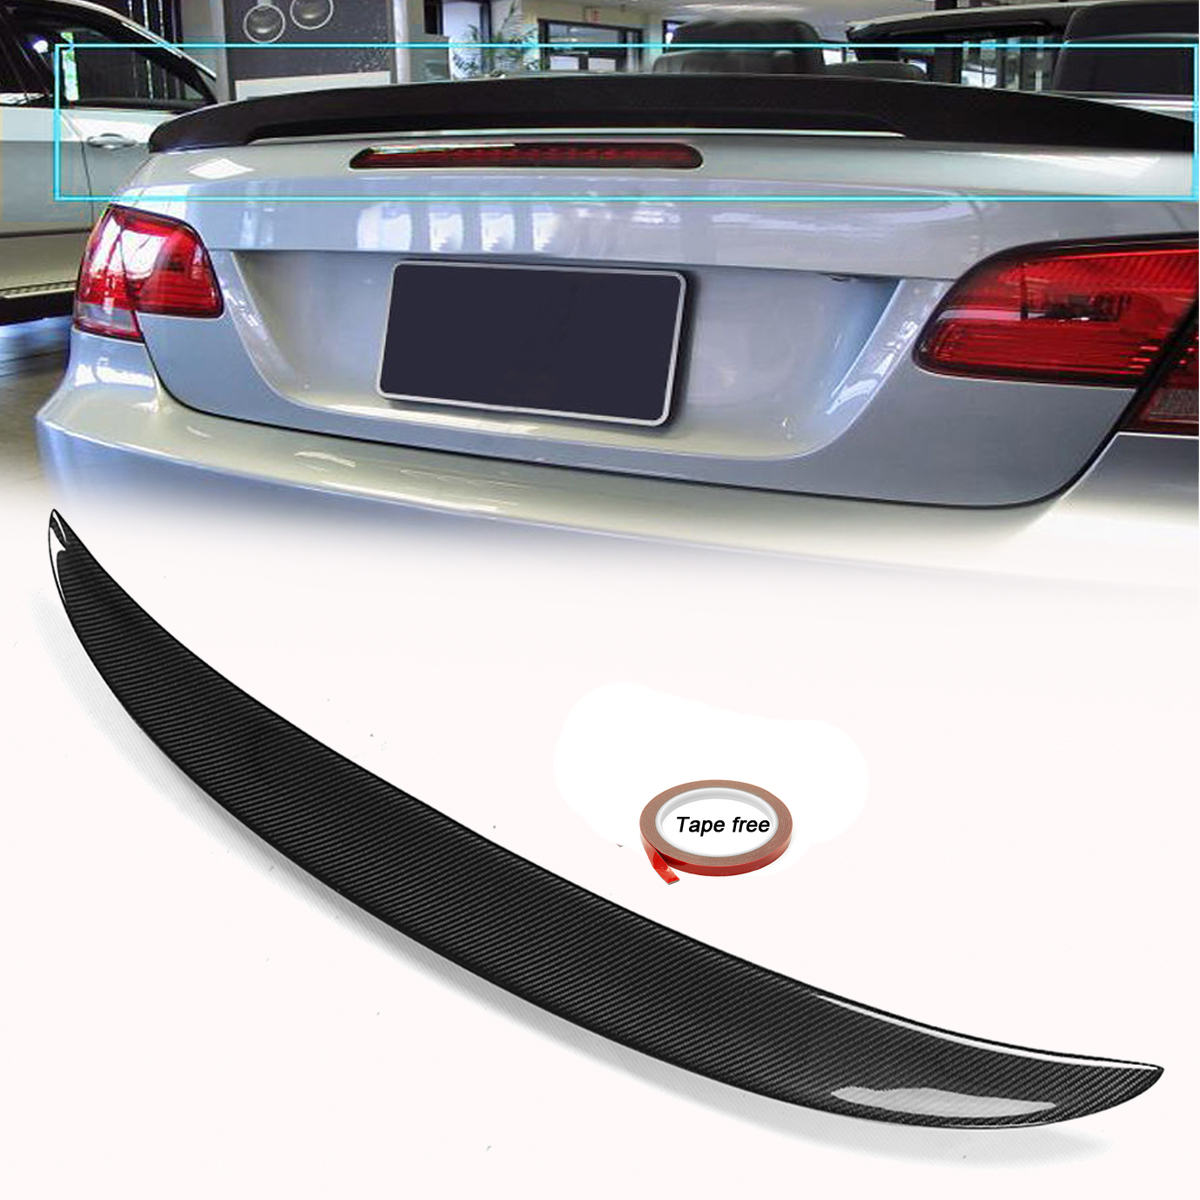 Bmw Z3 Wing Mirror Mount: Carbon Fiber Ducktail Boot Spoiler For BMW